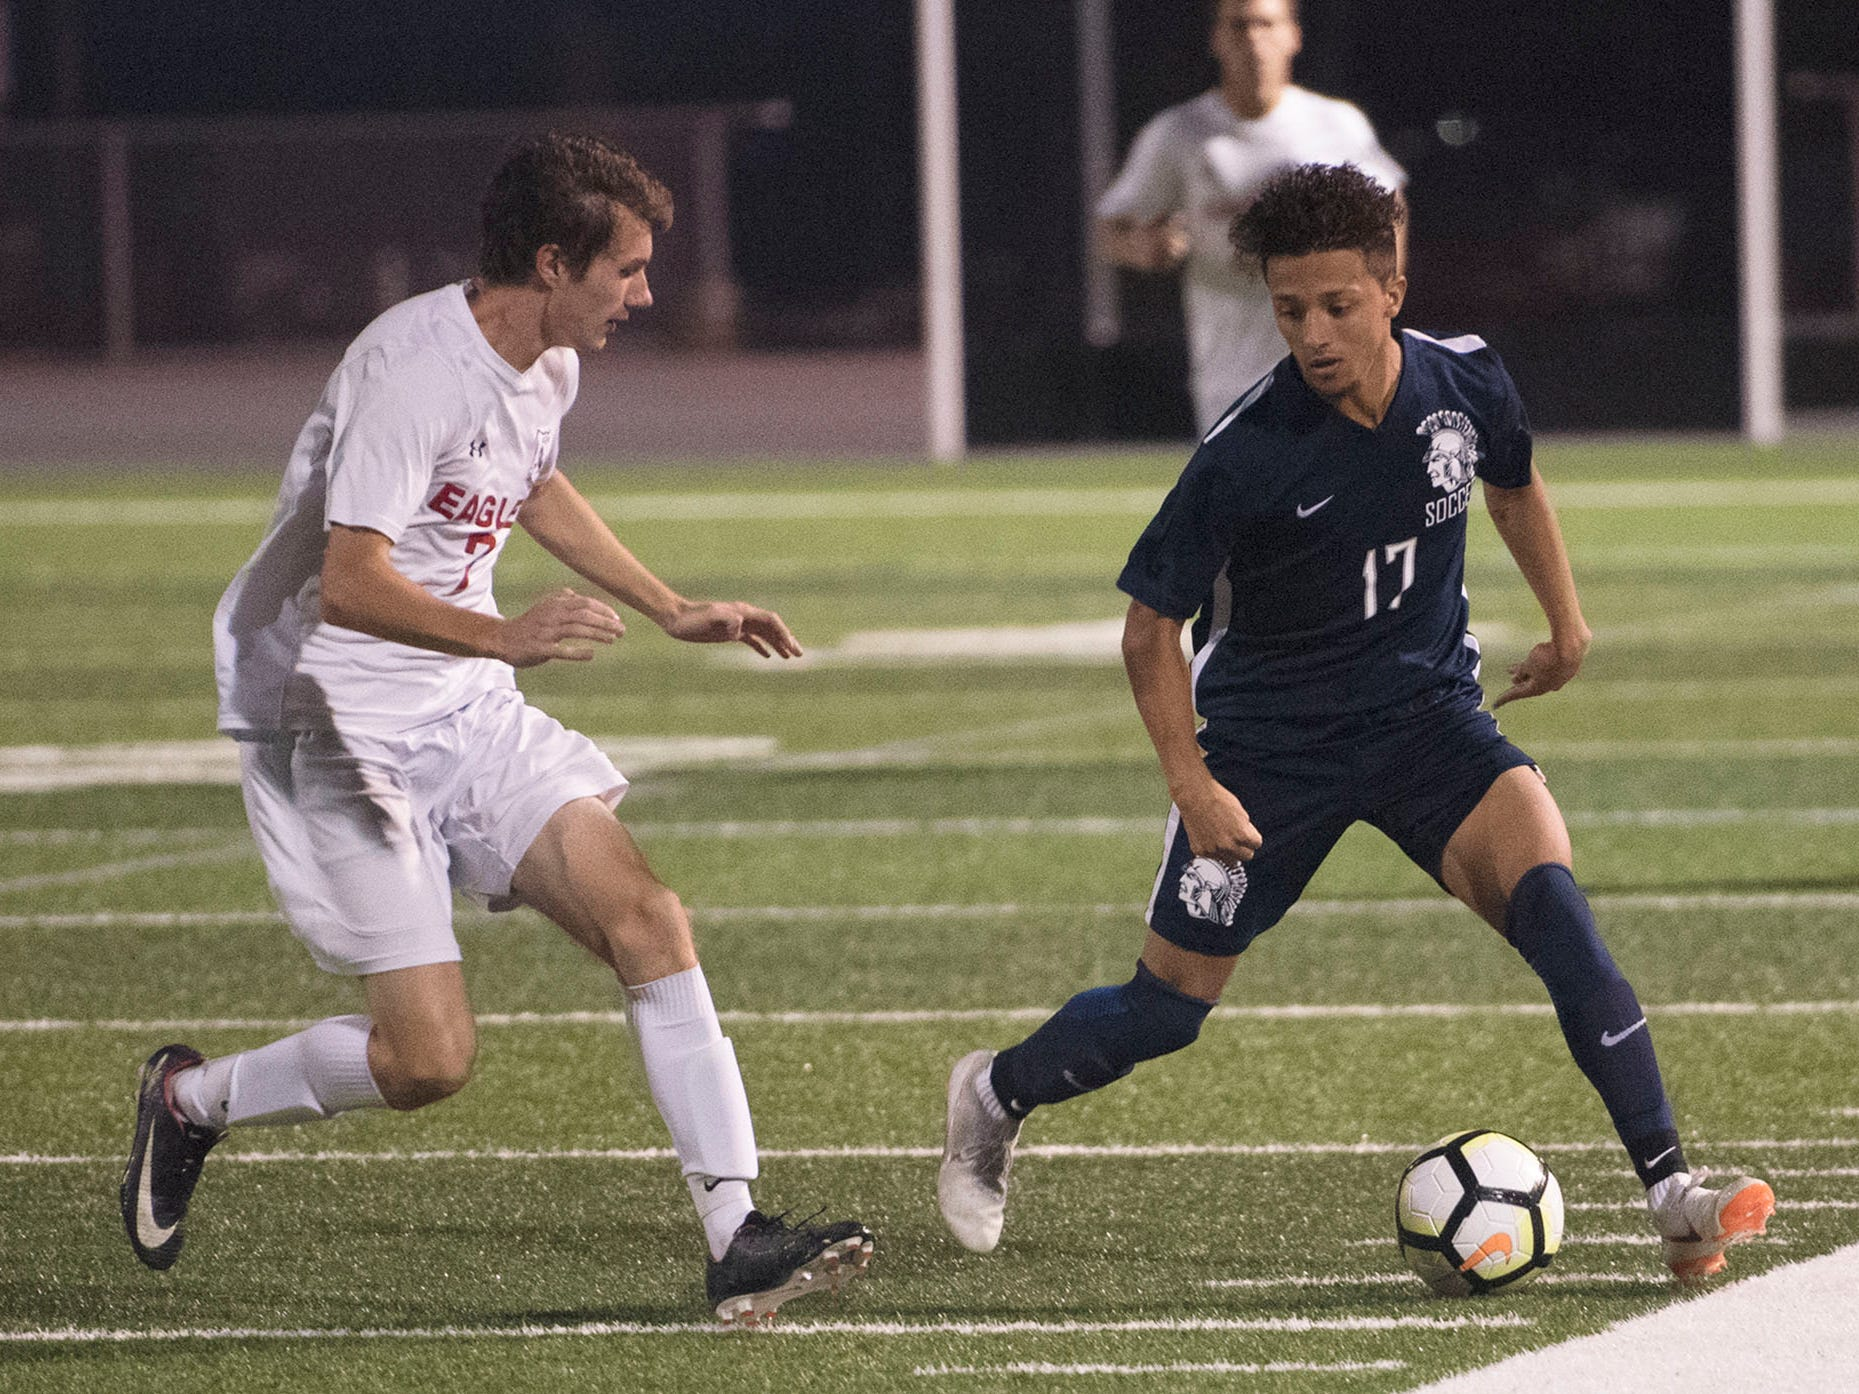 Chambersburg's Chuy Munoz dribbles the ball. Chambersburg hosted Cumberland Valley in PIAA soccer on Thursday, Oct. 4, 2018, but dropped a 2-1 match in double overtime.